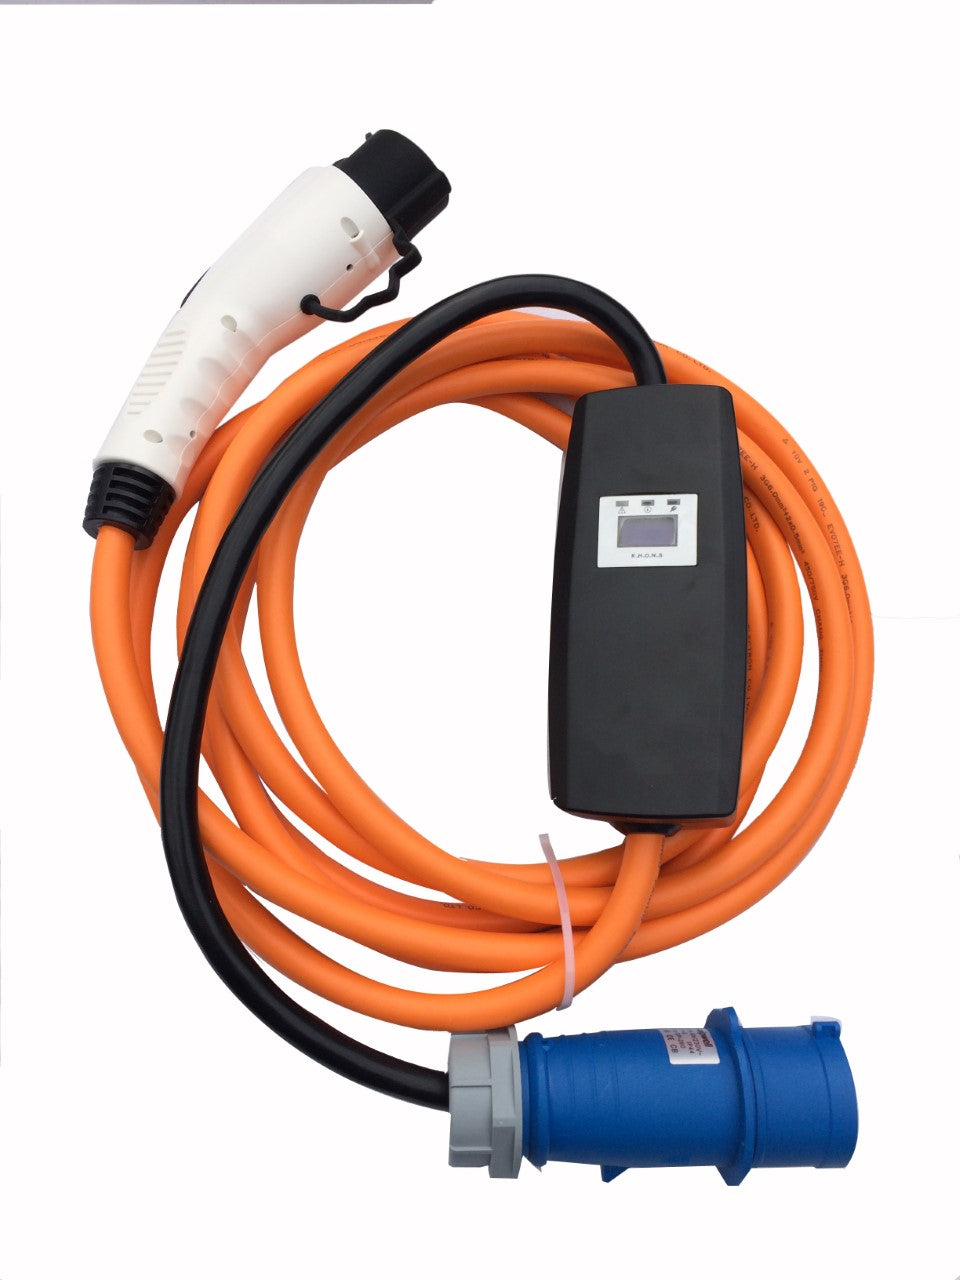 Nissan, Mitsubishi, Citroen, Chevrolet, Fiat, Ford, Honda, Peugeot, Toyota, Vauxhall 7kw PHEV / EV Charger, Charging Cable - 32amp EVSE - 5 meters long